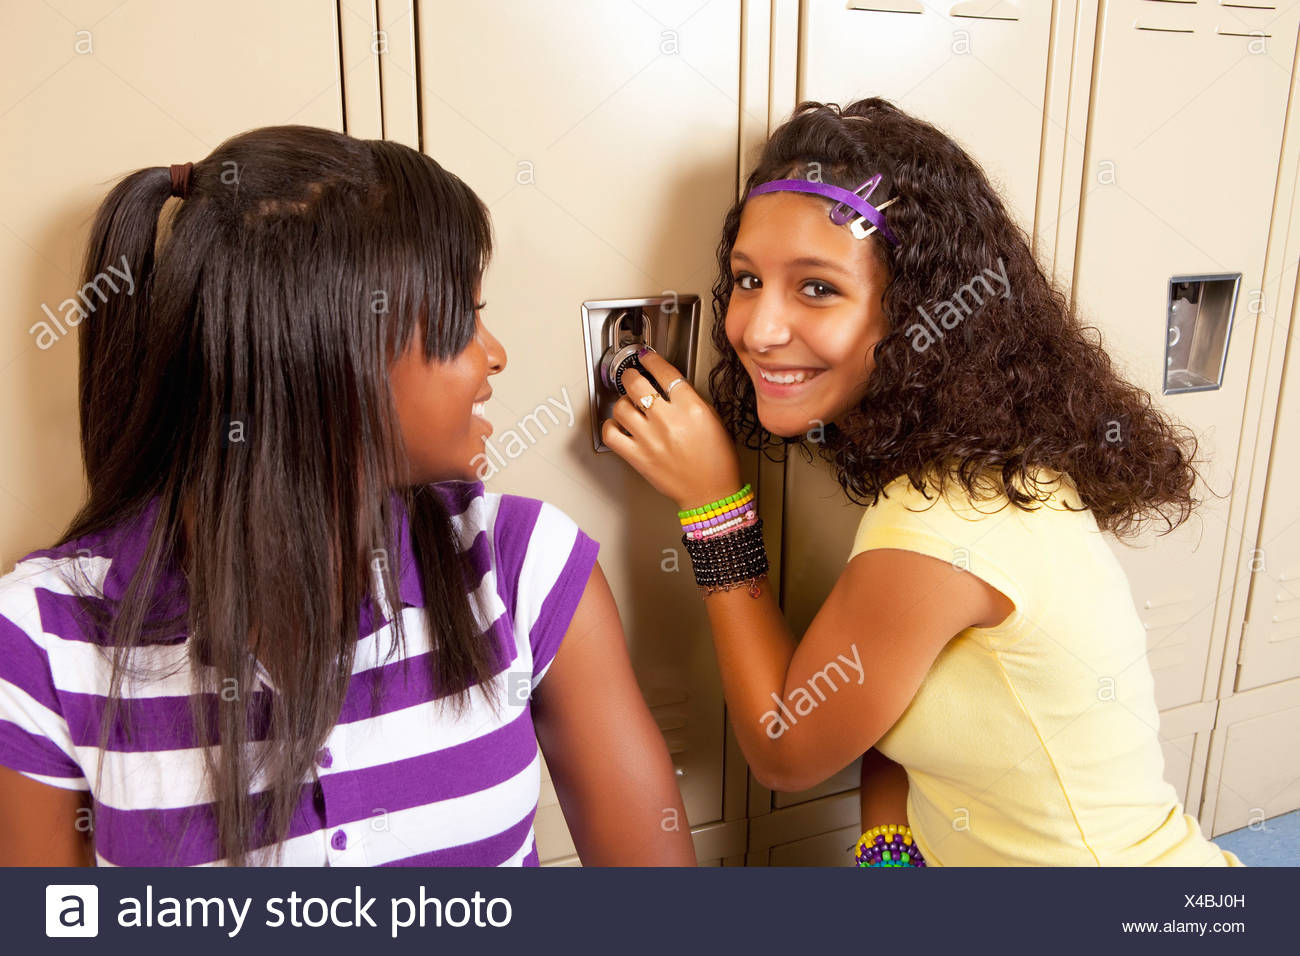 Fort Lauderdale, Florida, United States Of America; Two Teenage Girls Sitting In Hallway Doing The Combination Lock On A Locker - Stock Image